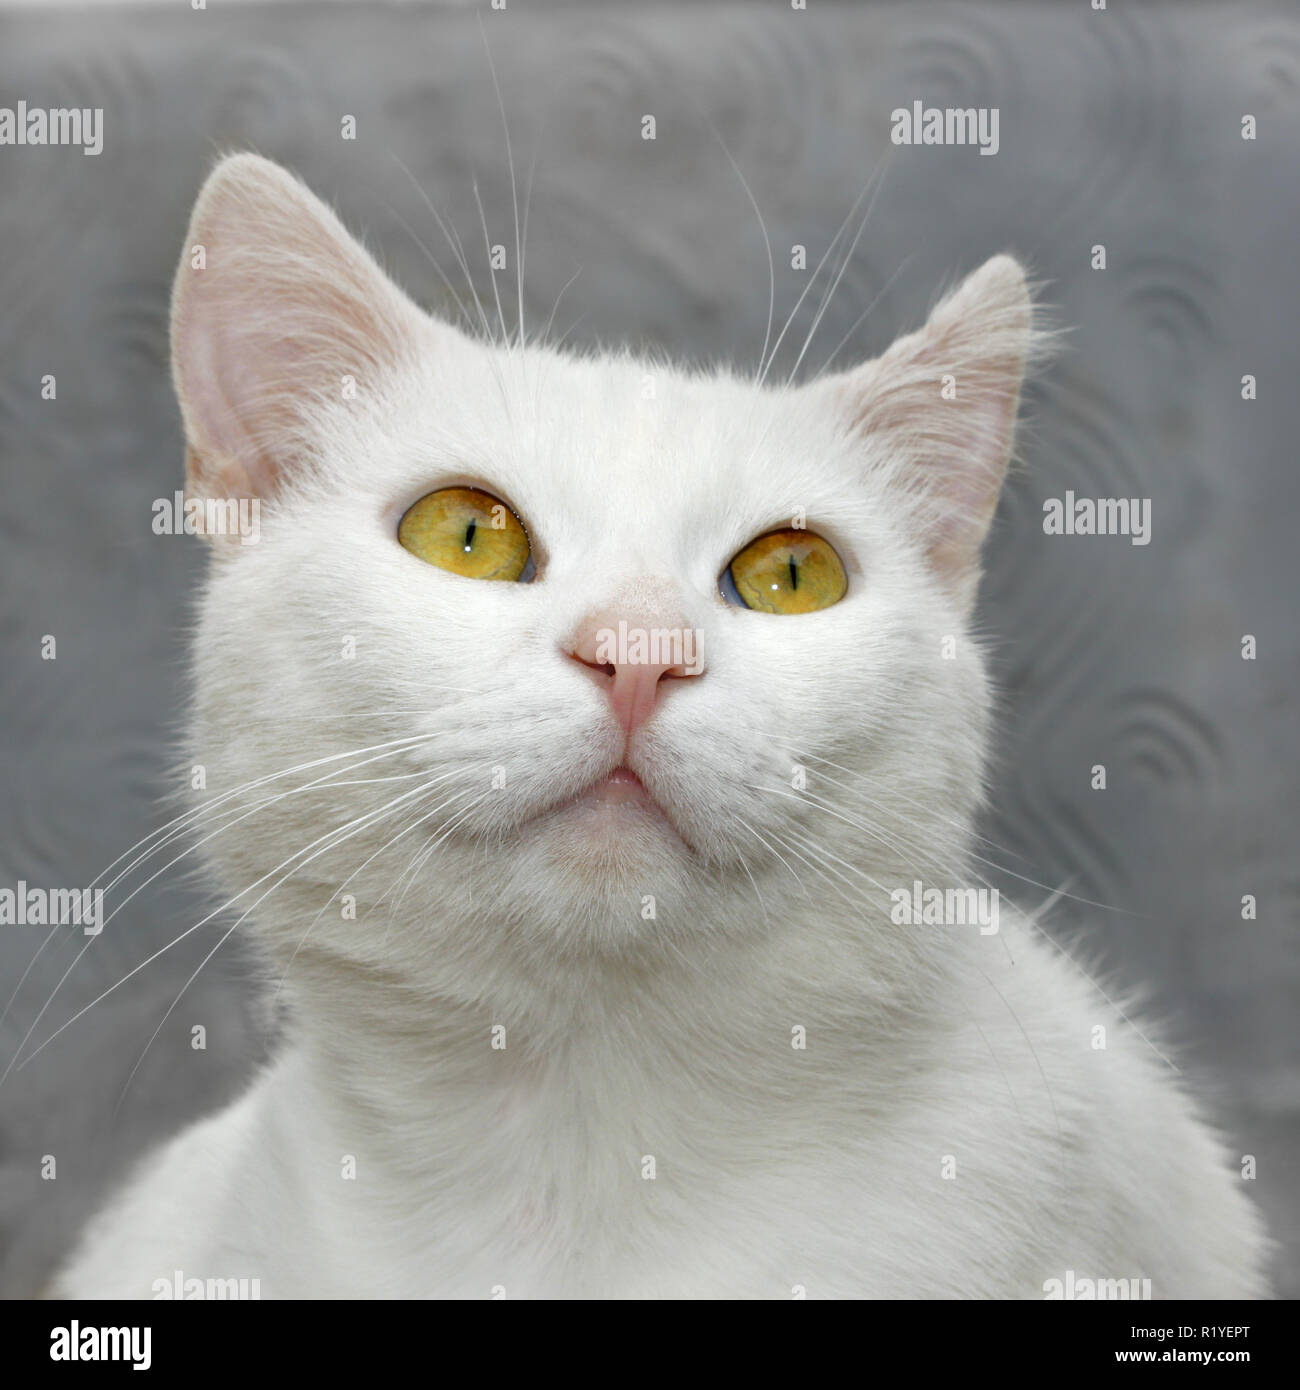 Portrait d'un chat domestique mignon blanc close up sur un fond de mur gris Photo Stock